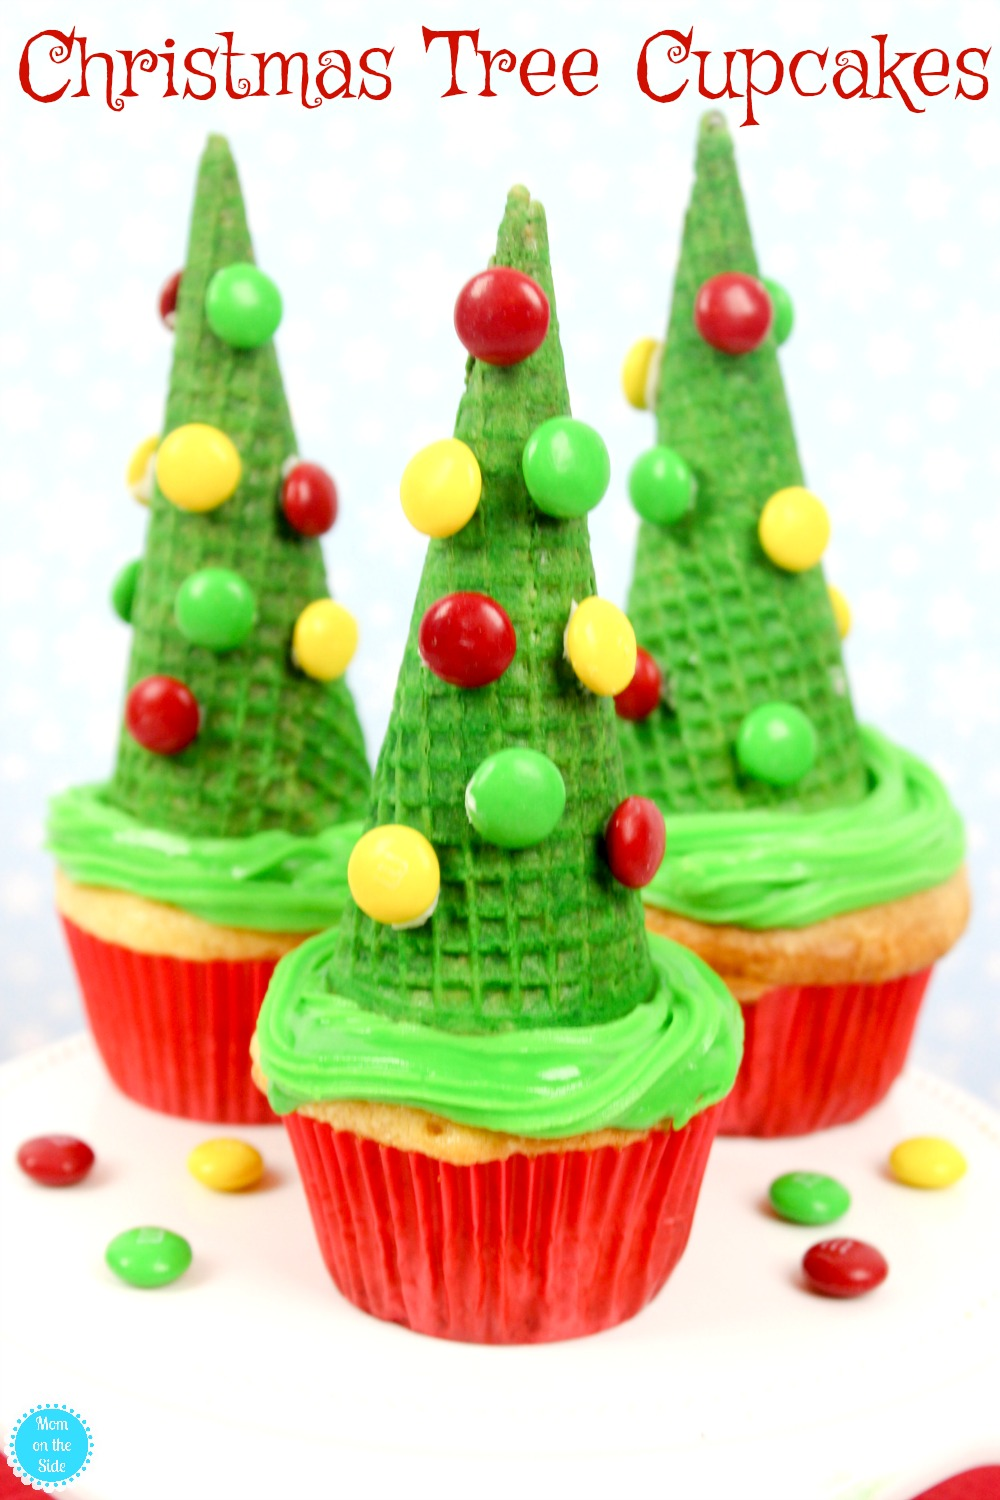 A fun and easy Christmas Dessert, the kids will love these Christmas Tree Cupcakes